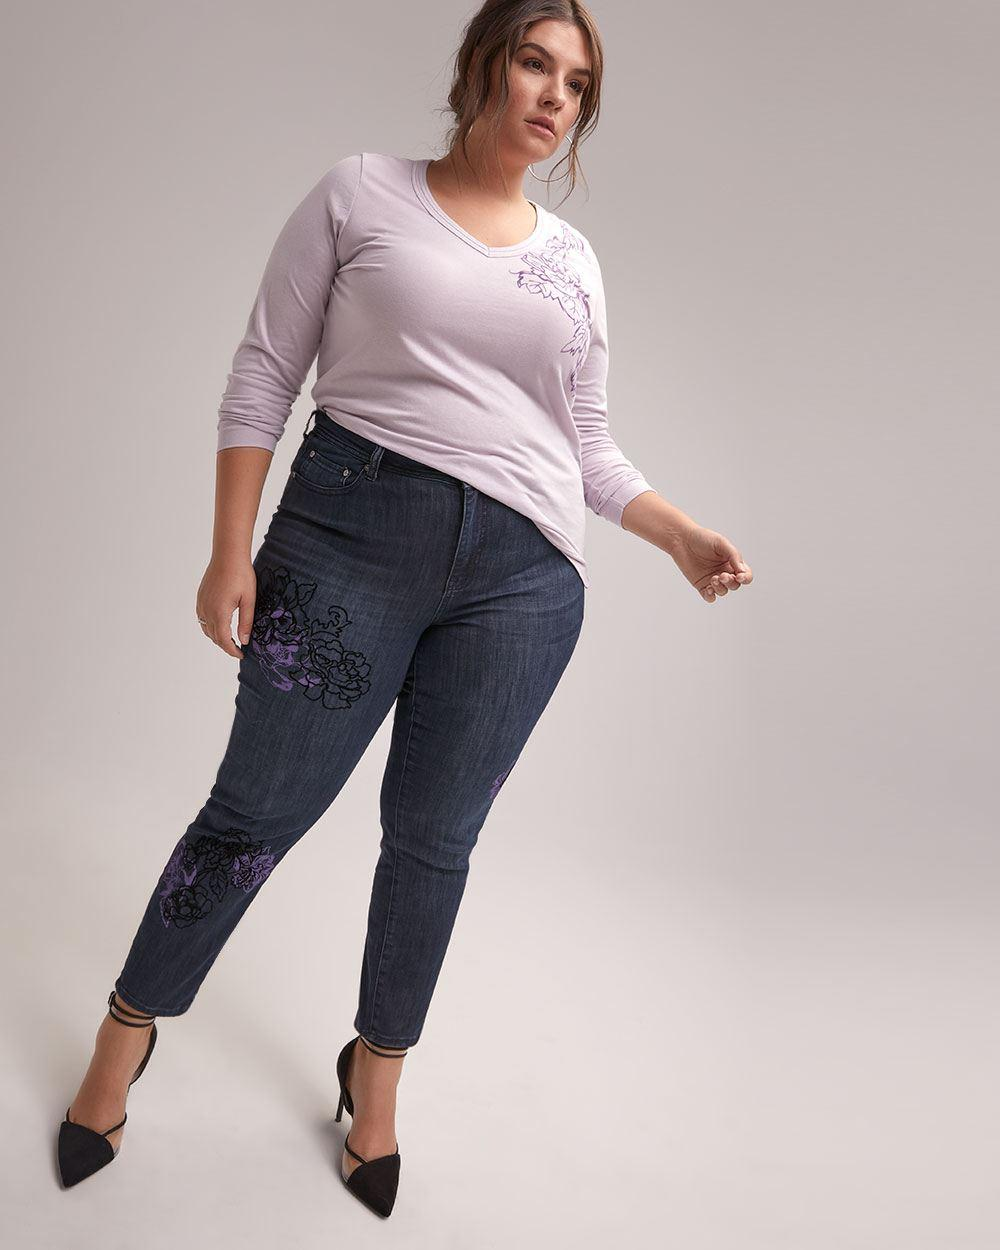 c5e906d2d16 Addition Elle. Women s Blue Online Only - Tall Slightly Curvy Straight Leg  Girlfriend Jean ...